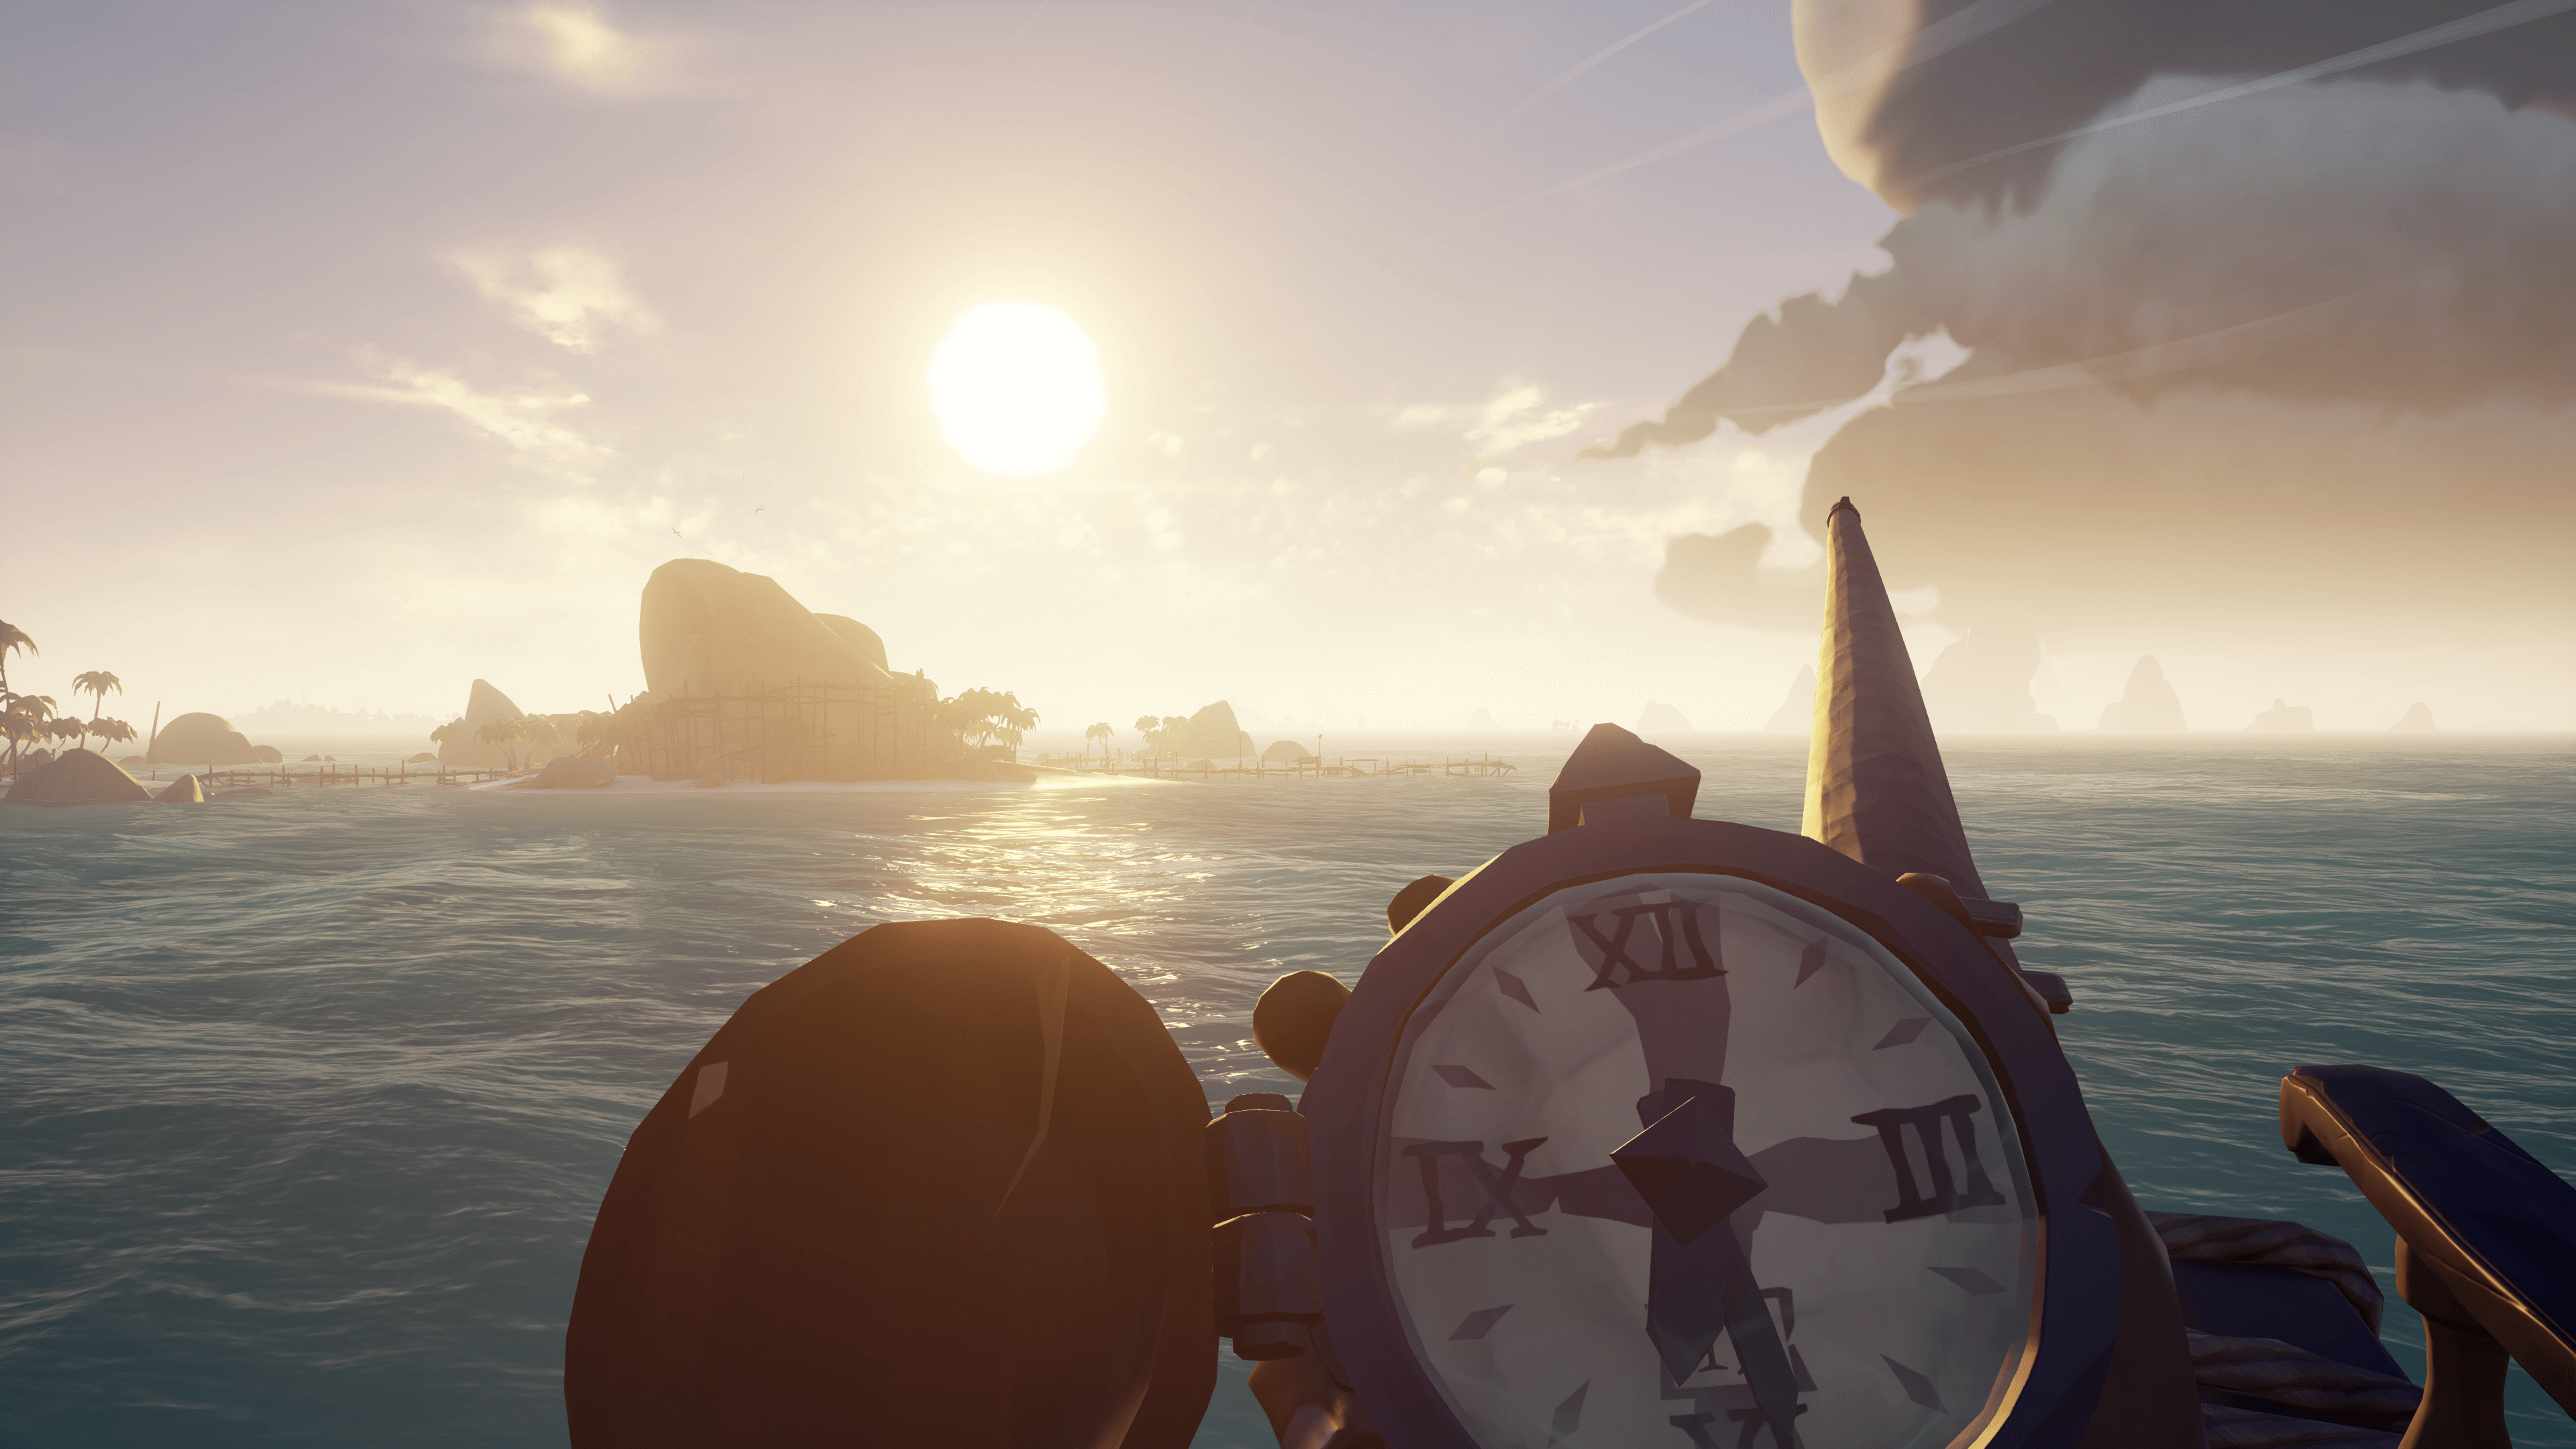 sea of thieves 8_velas o timon o brujula